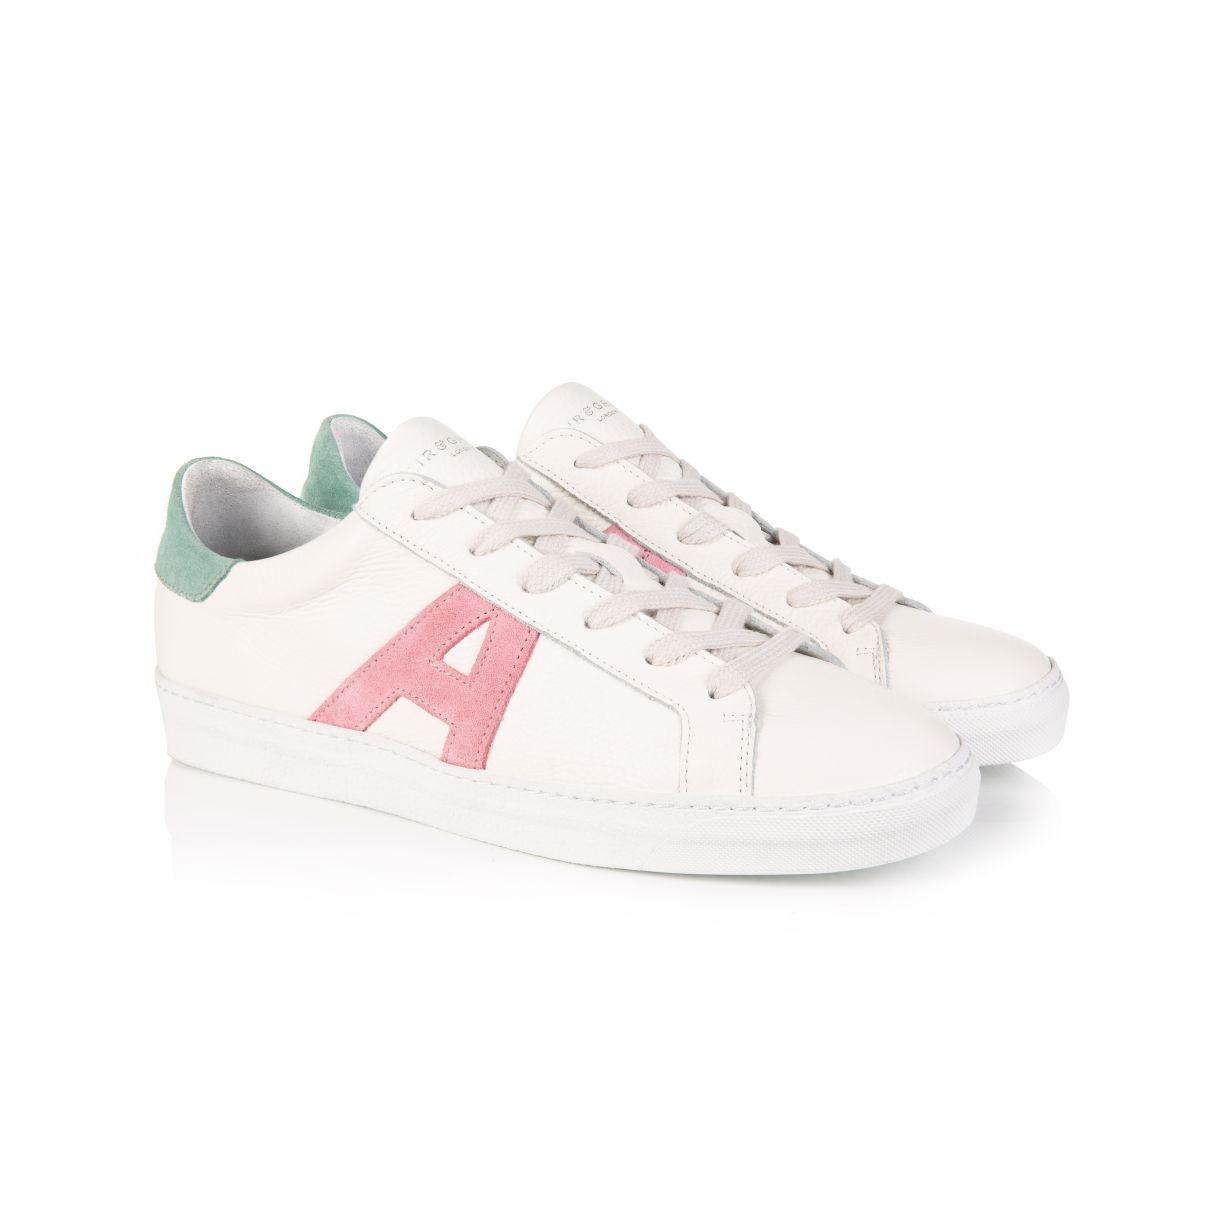 CRU SIGNATURE: WHITE & PASTEL TRAINERS - COMING SOON